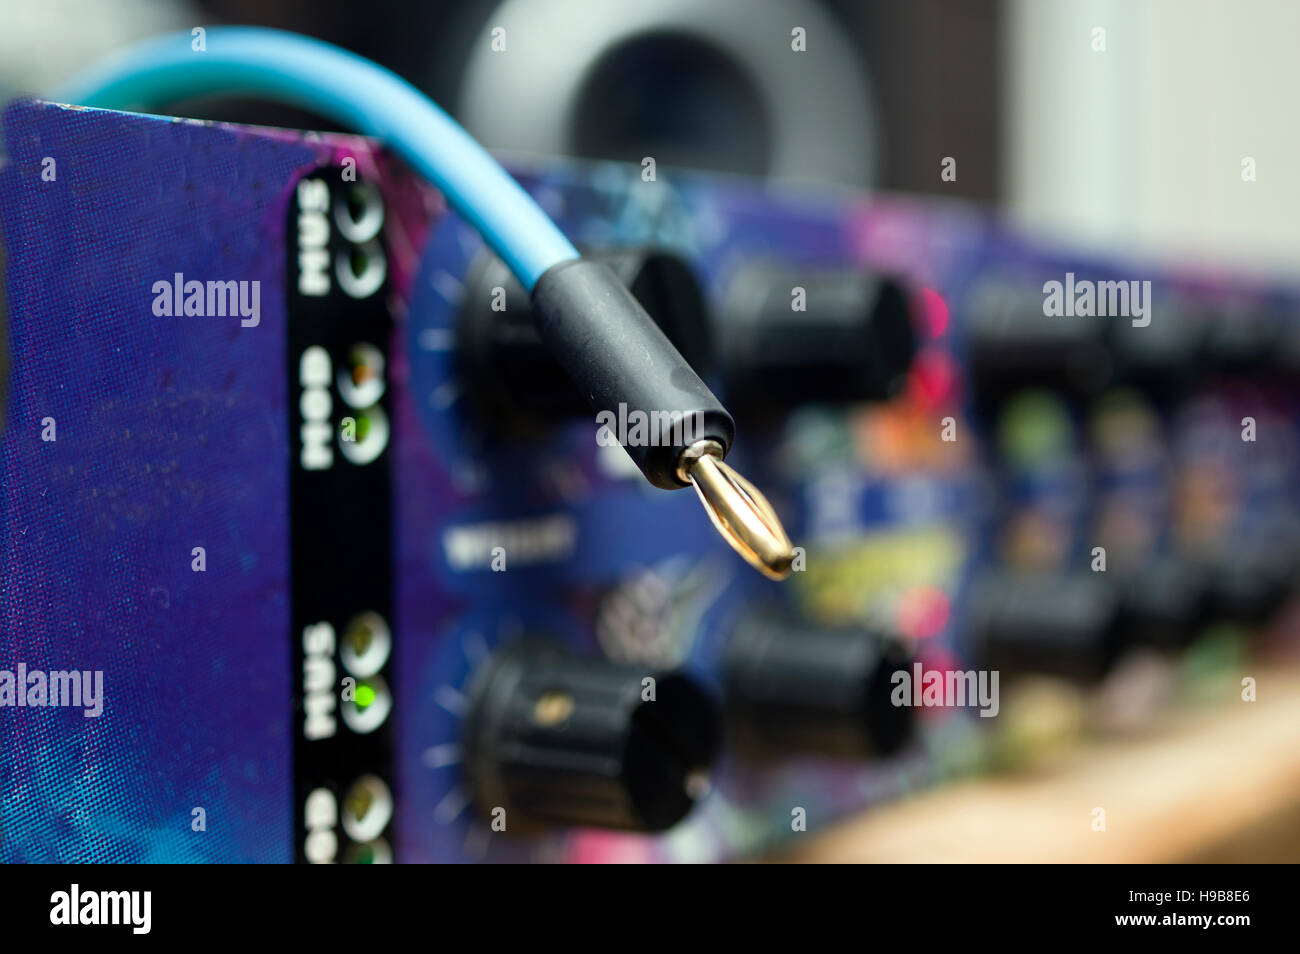 Audio Cable - Stock Image